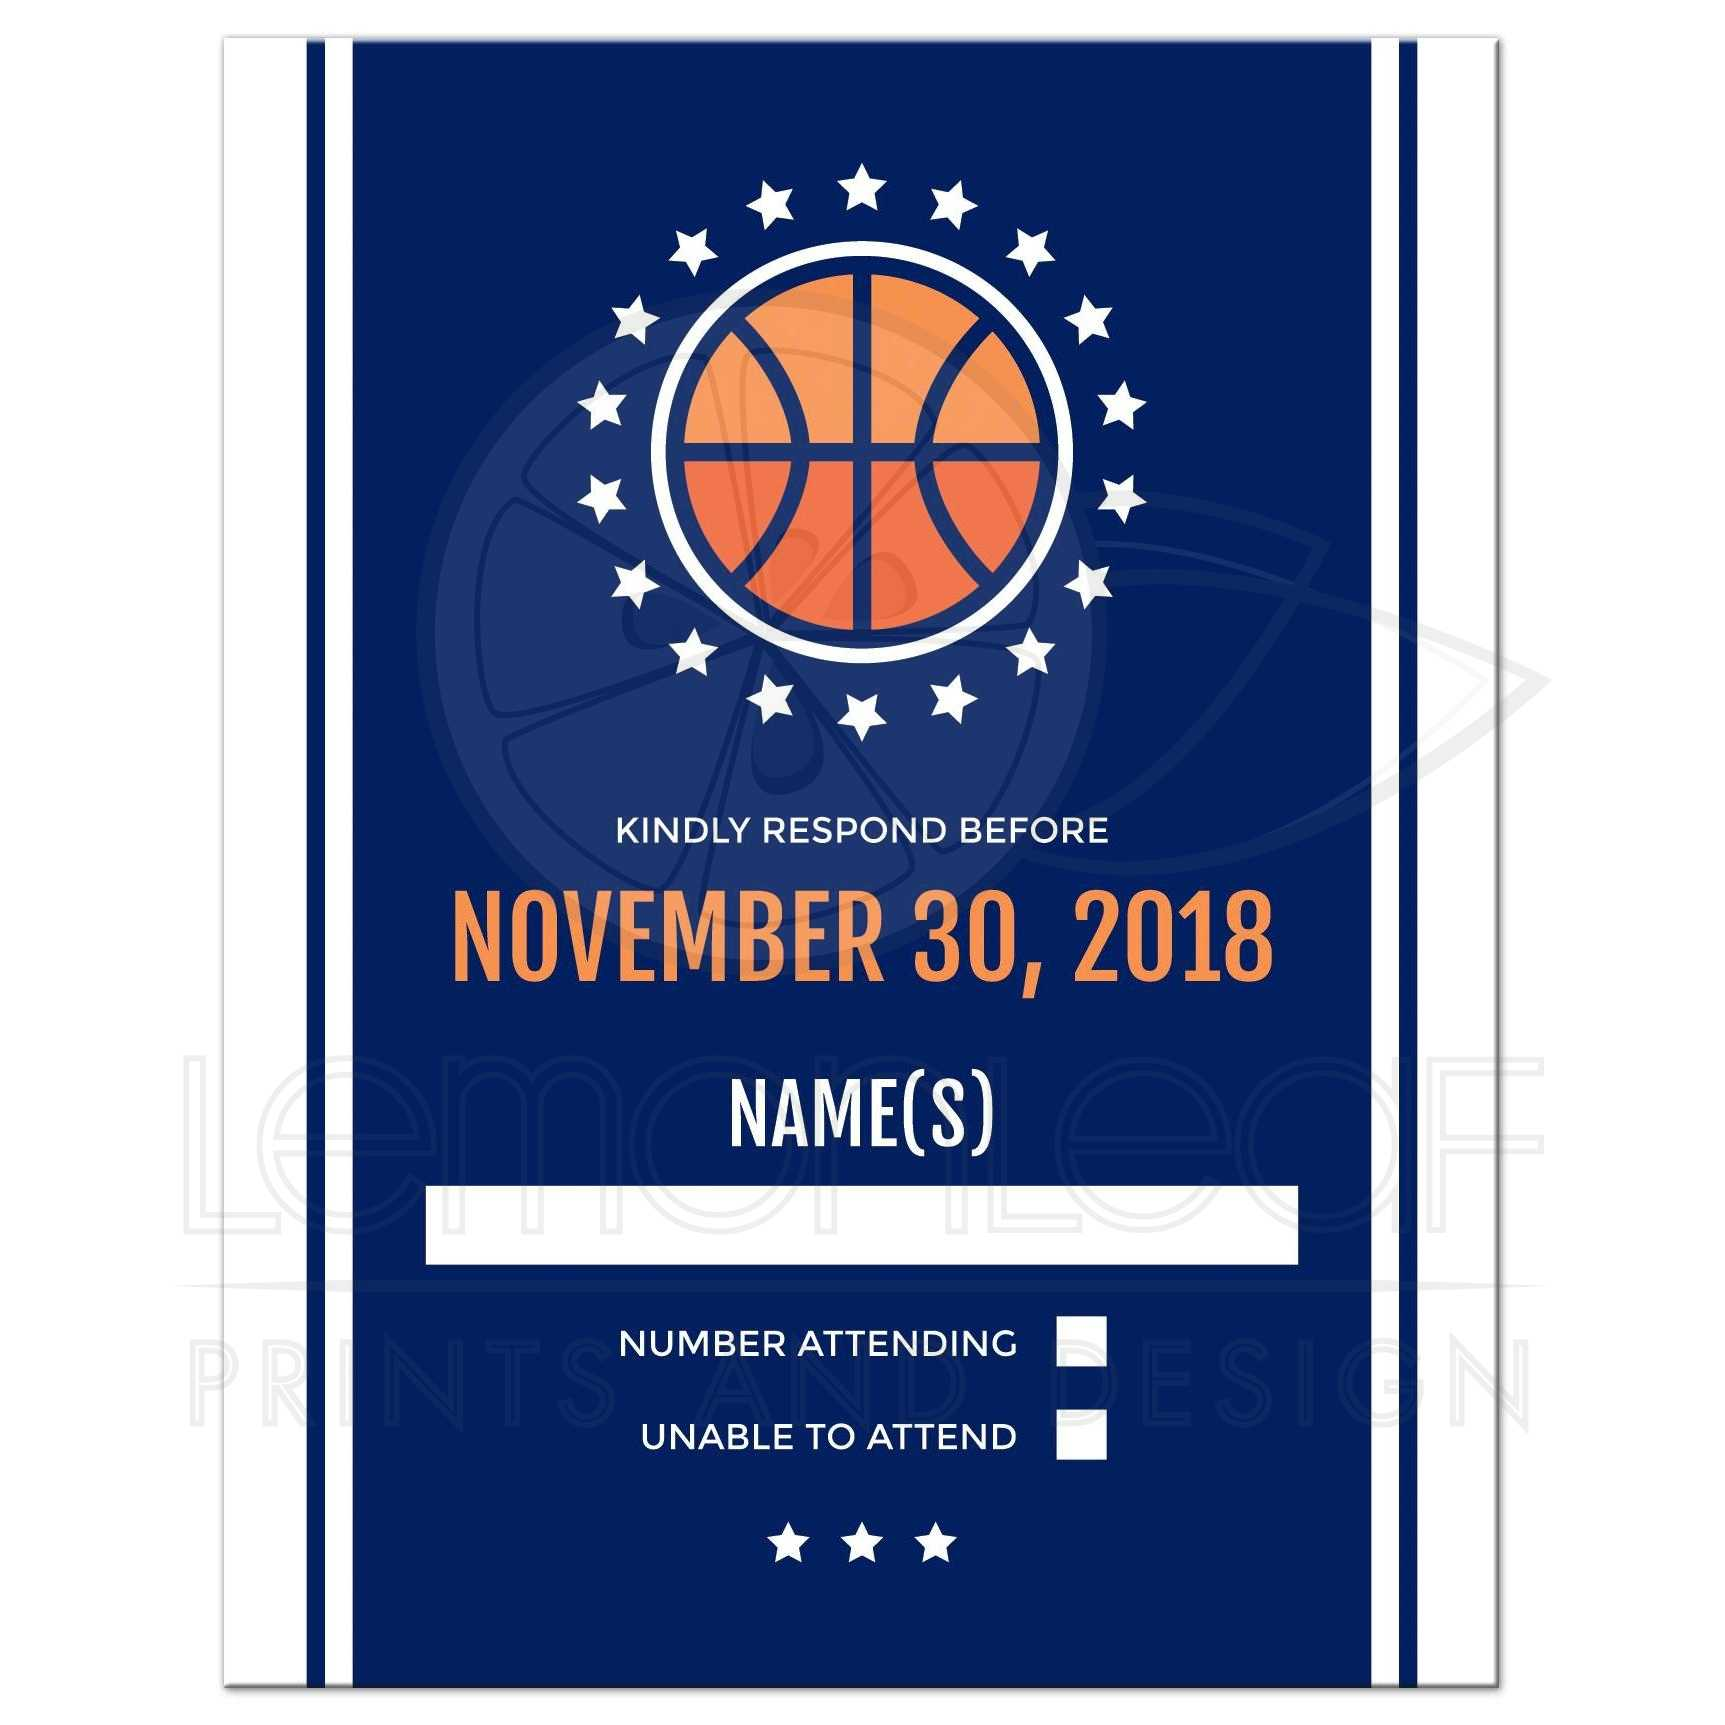 Basketball bar mitzvah RSVP card Navy blue design with white borders